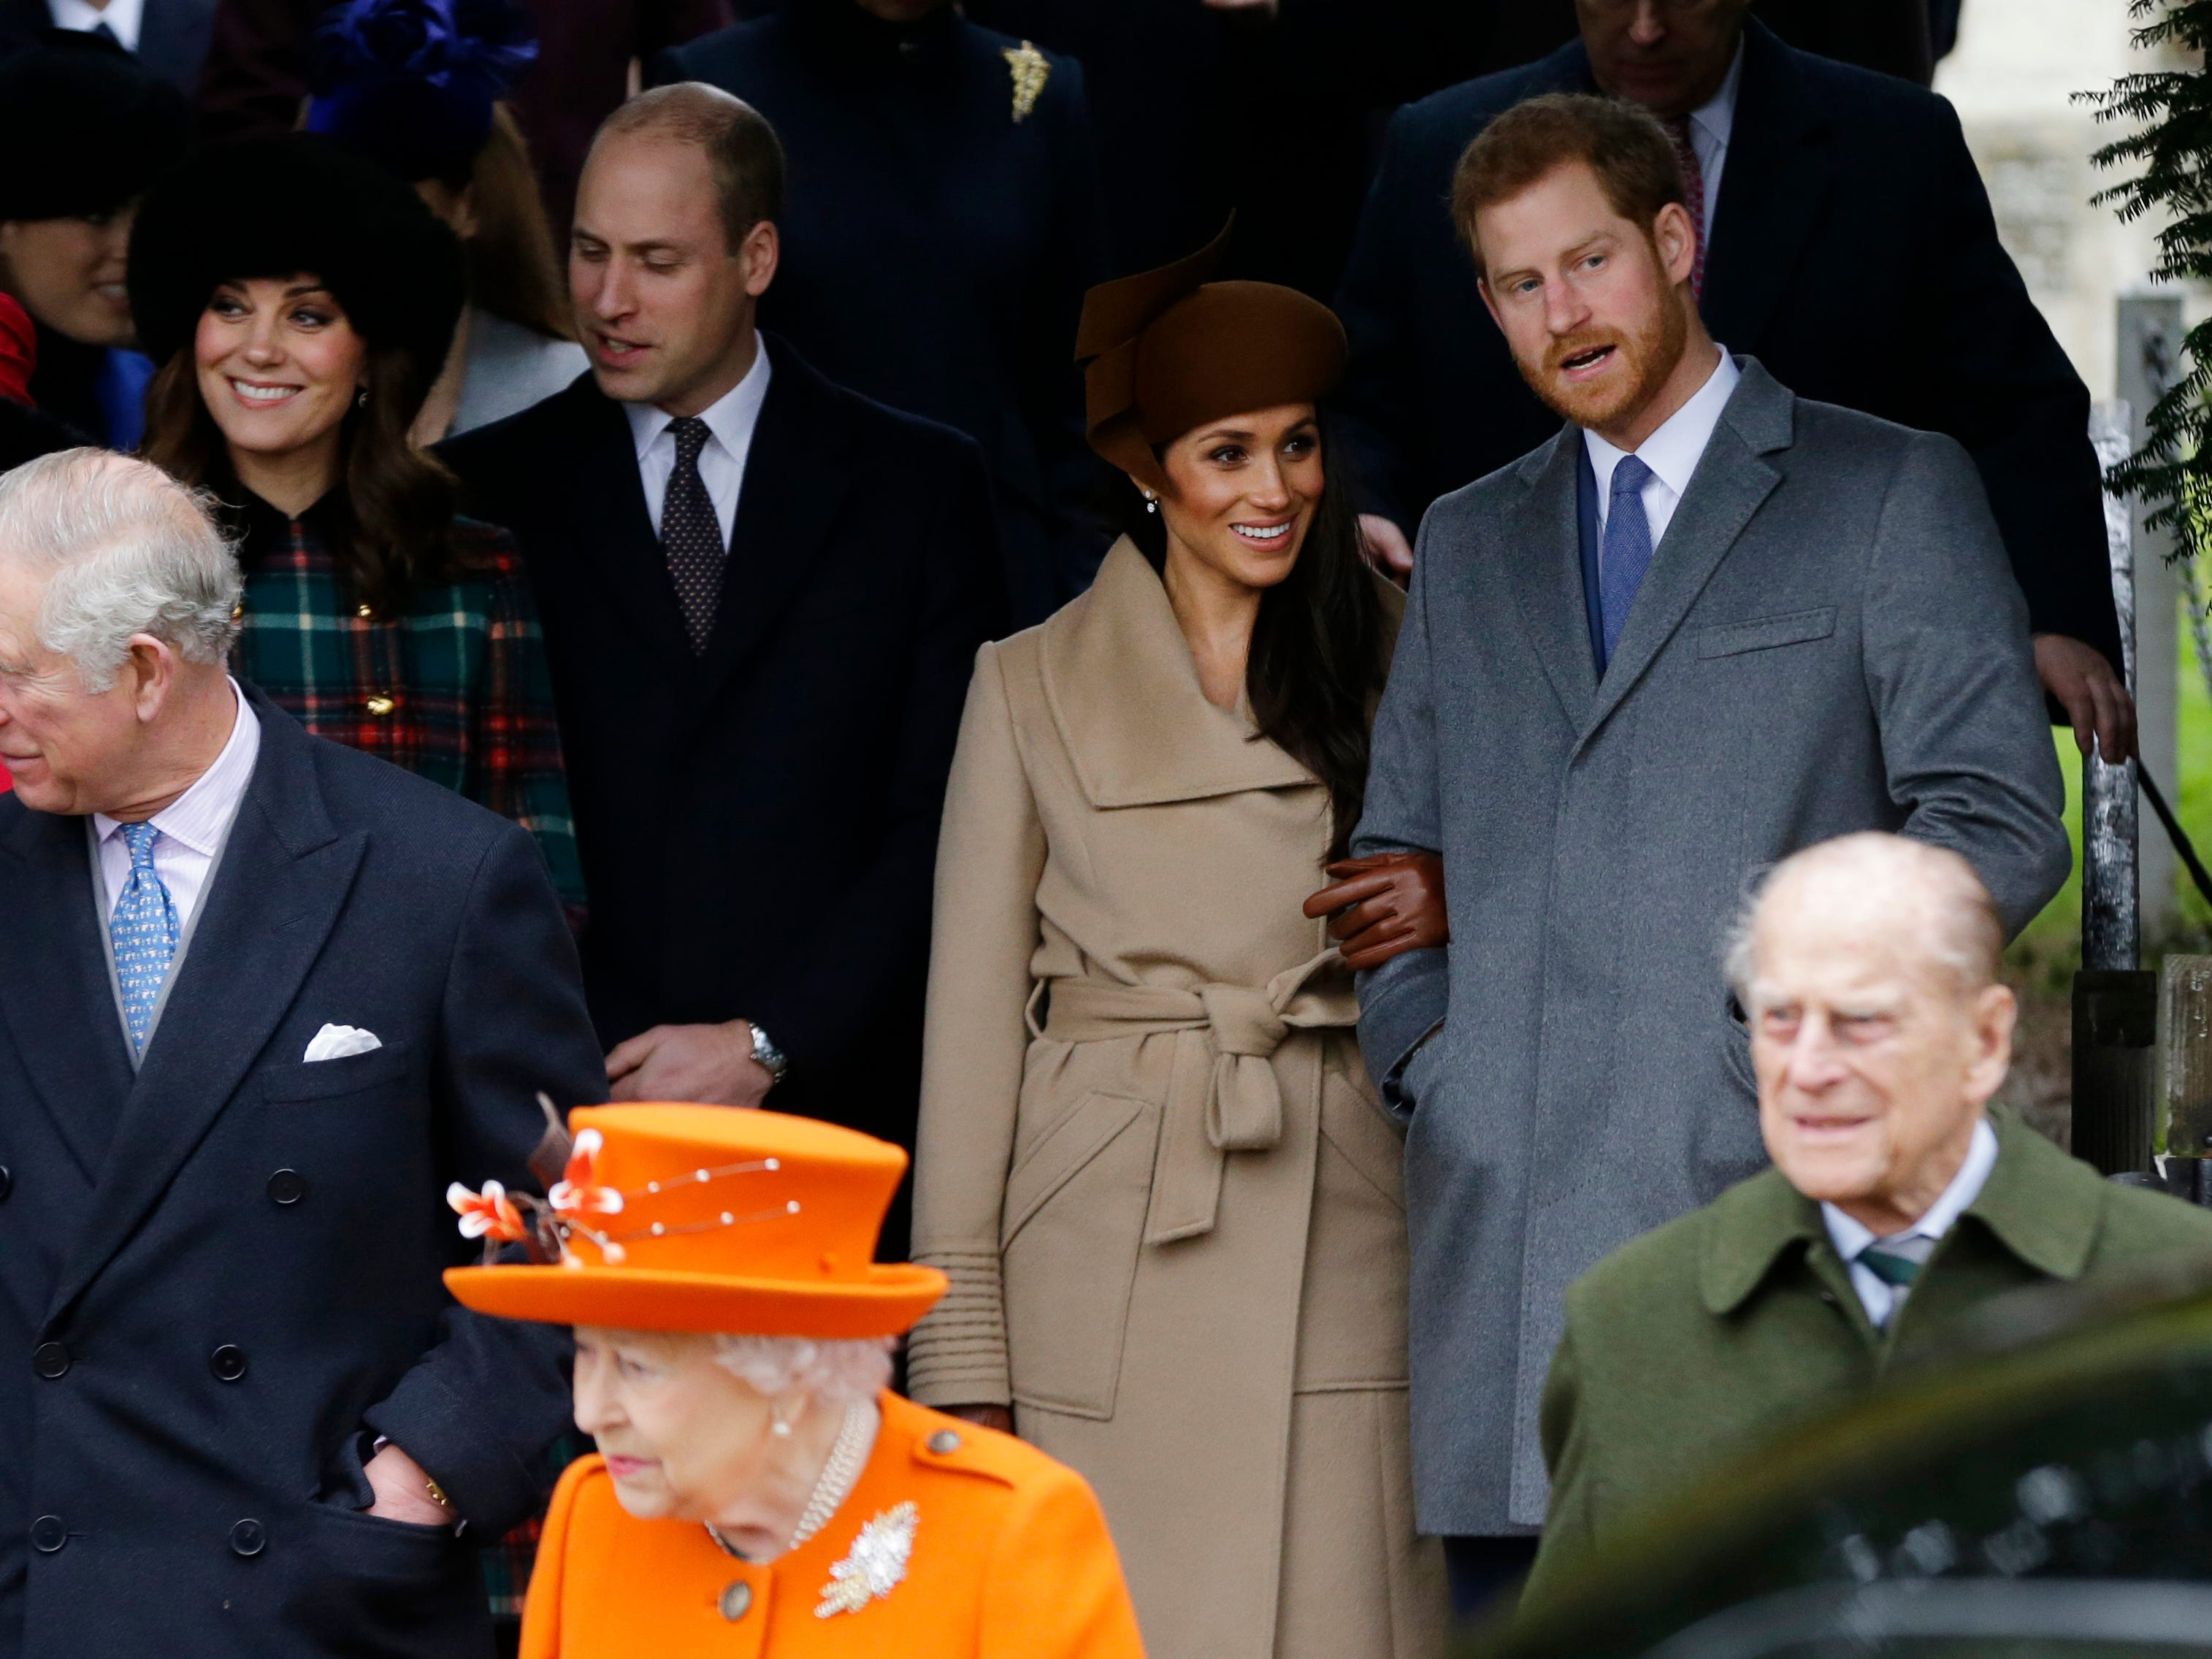 Meghan Markle (in tan coat) gathers with the royal family for Christmas Day service in Sandringham, a first for a royal bride-to-be, in 2017.